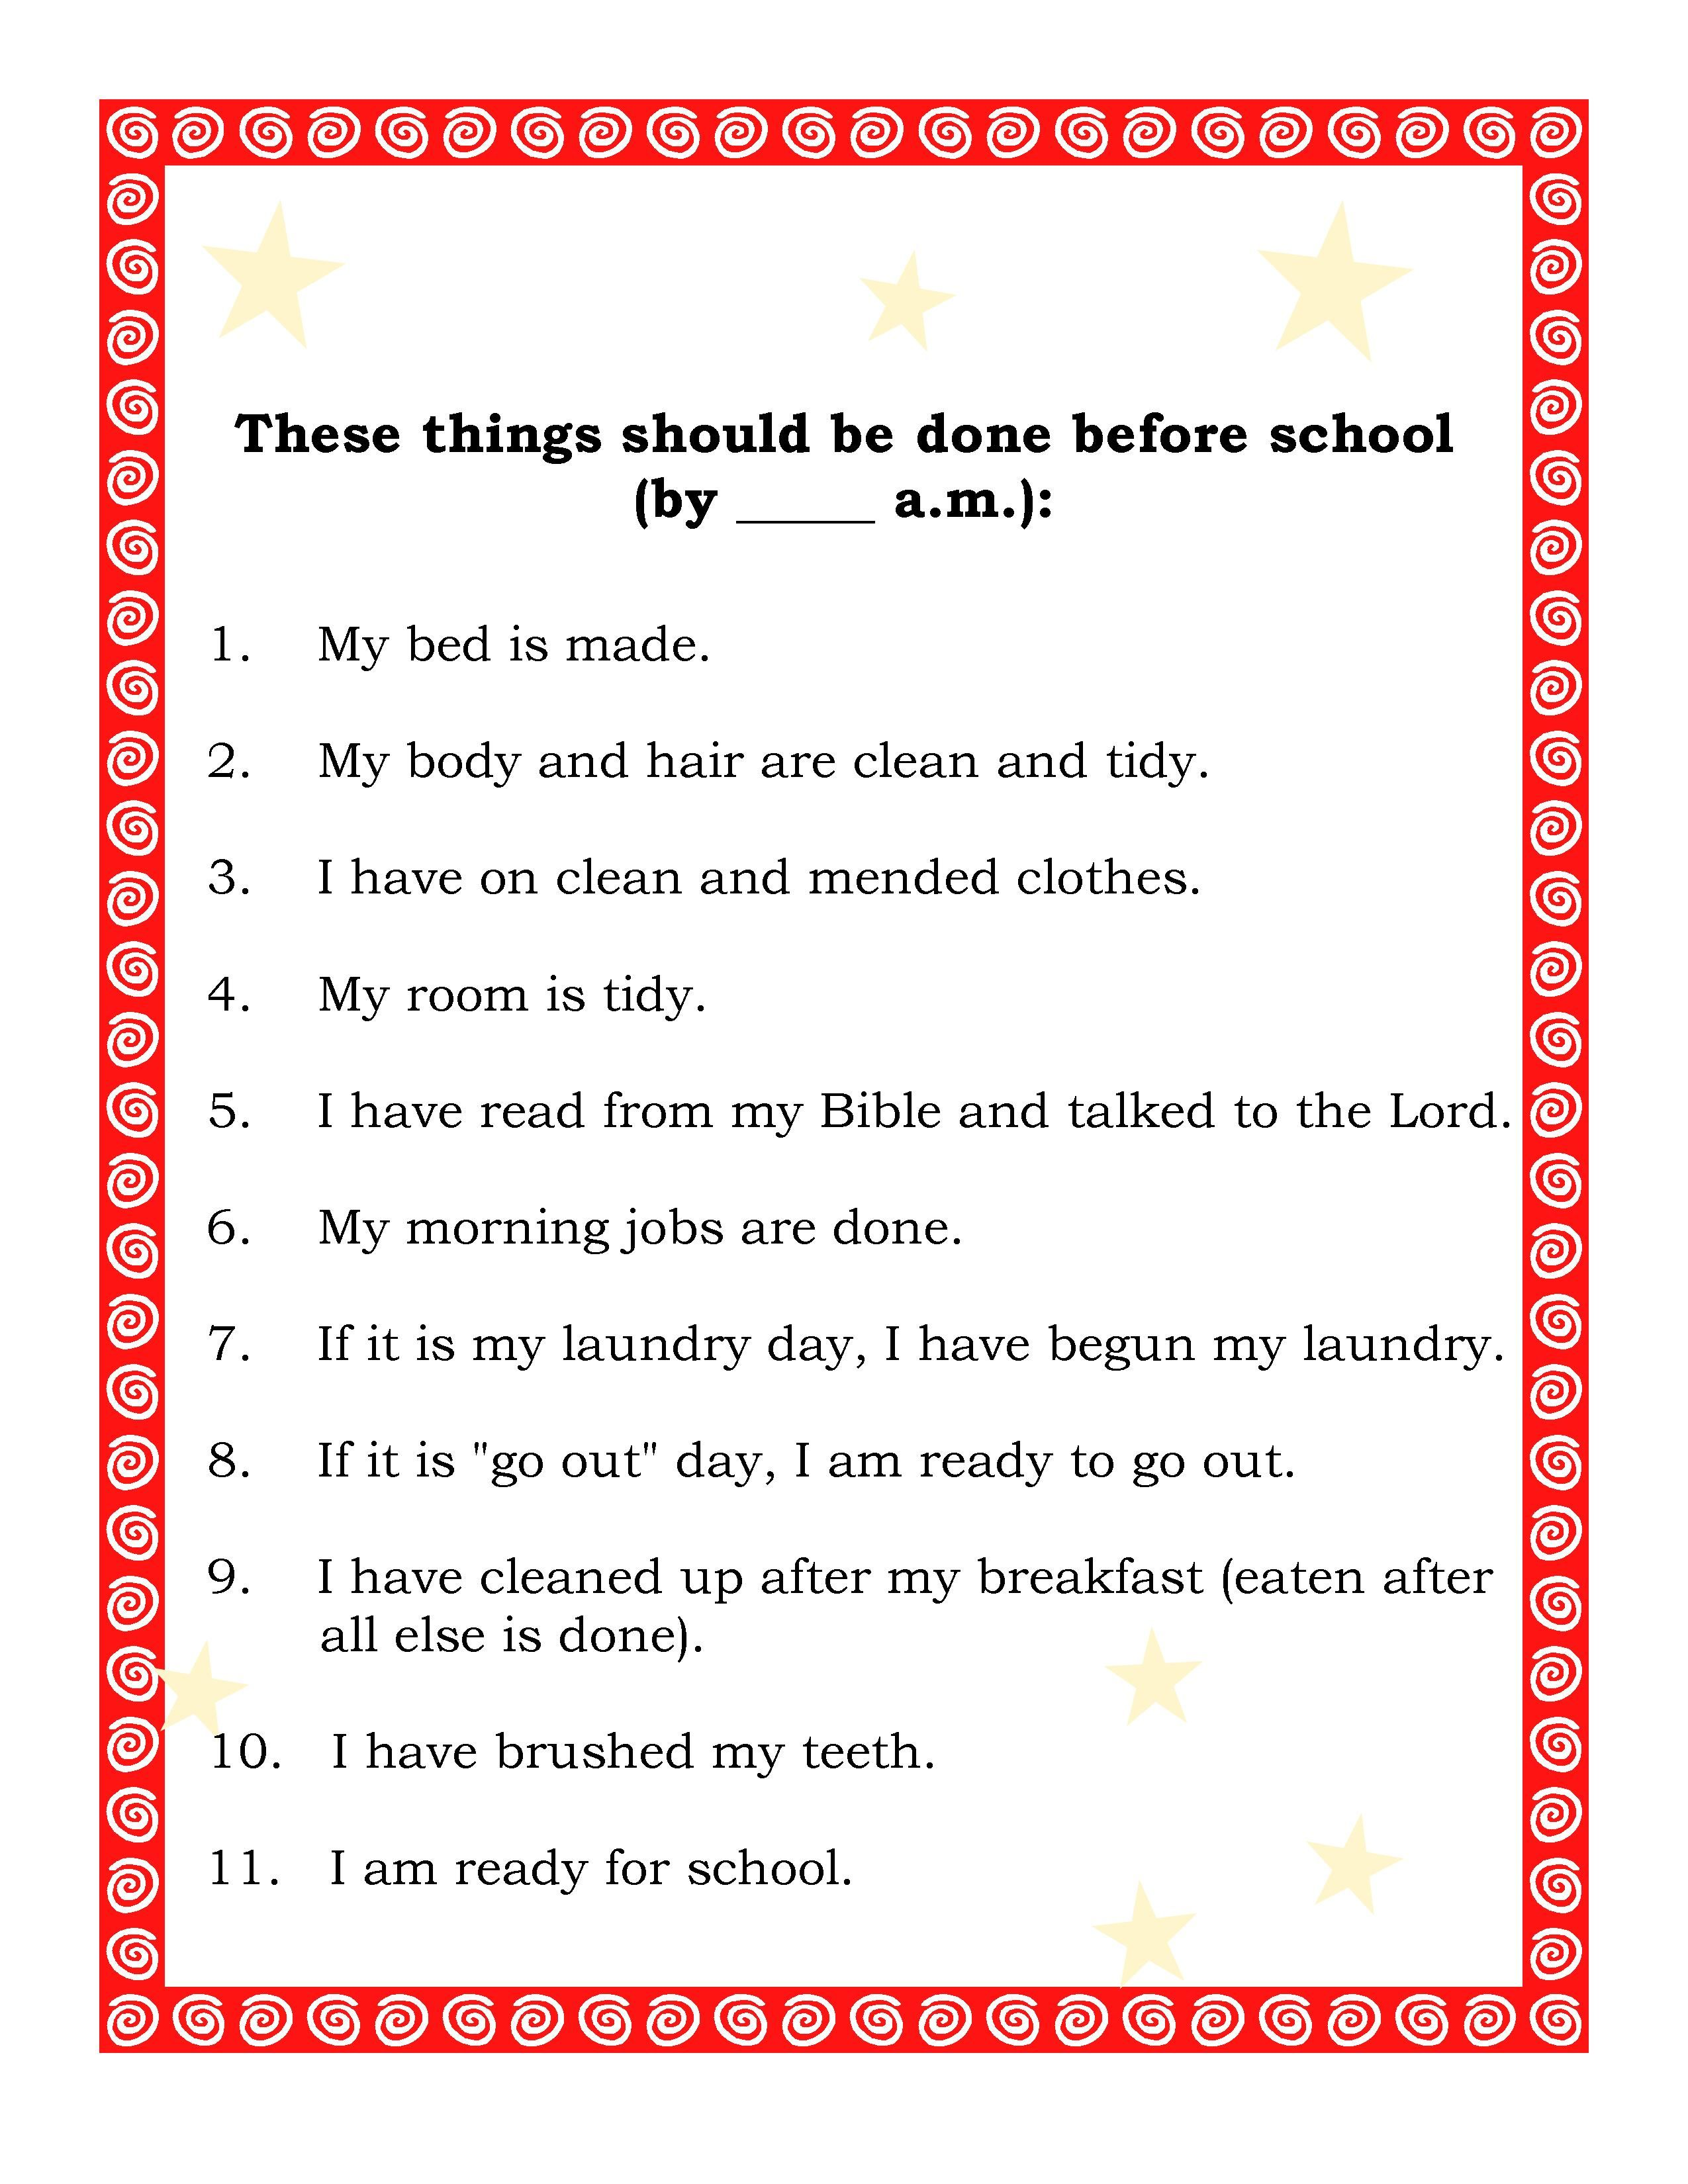 Before School List Everydayhomemaking